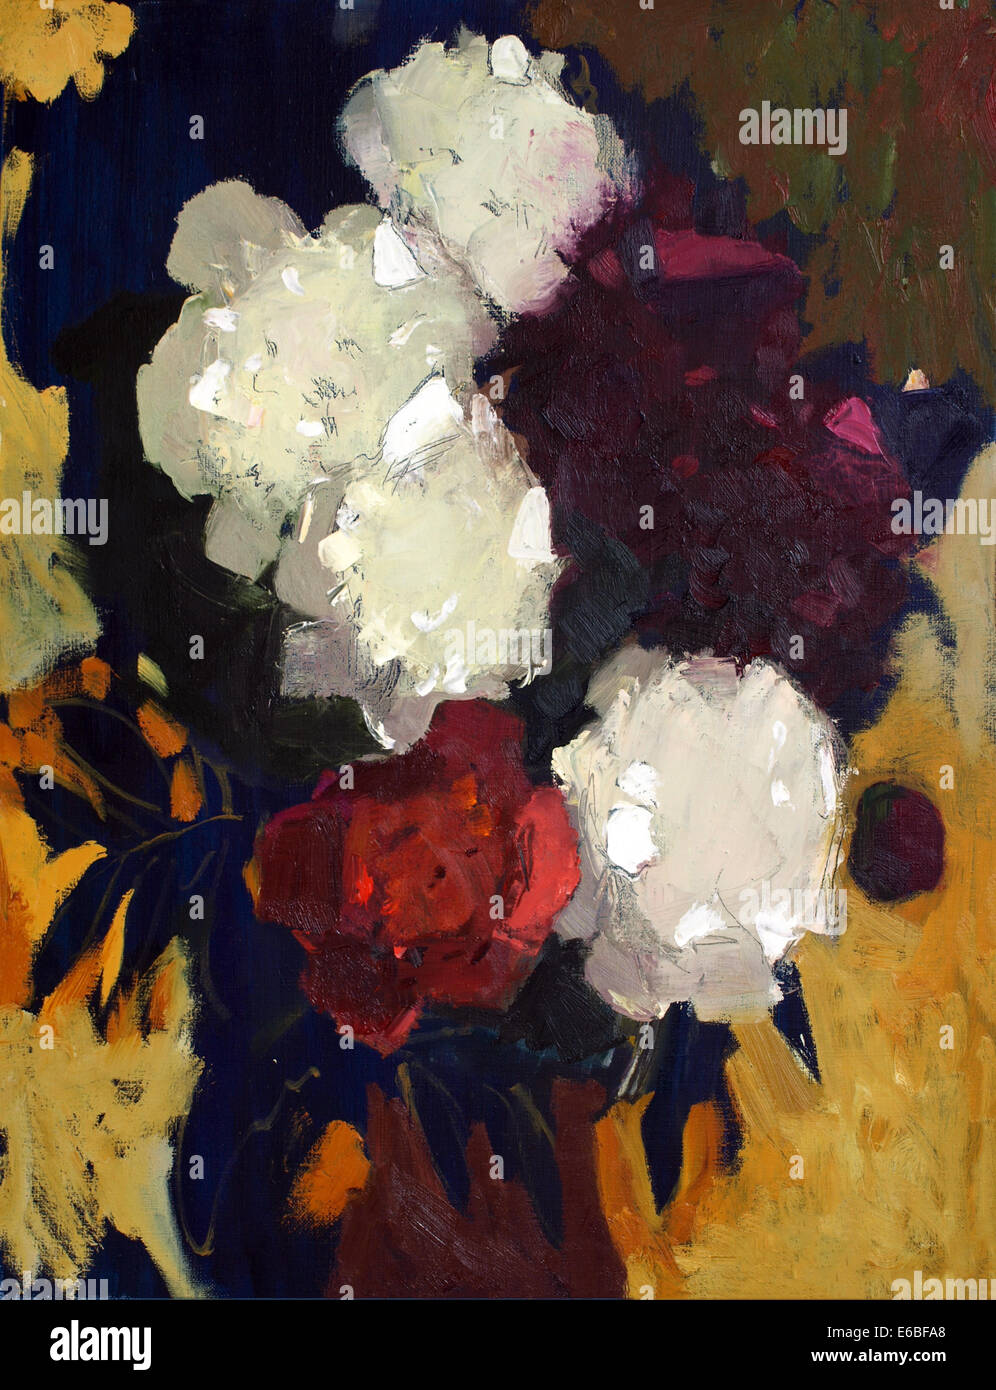 Oil Painting Beautiful Flowers Stock Photos Oil Painting Beautiful